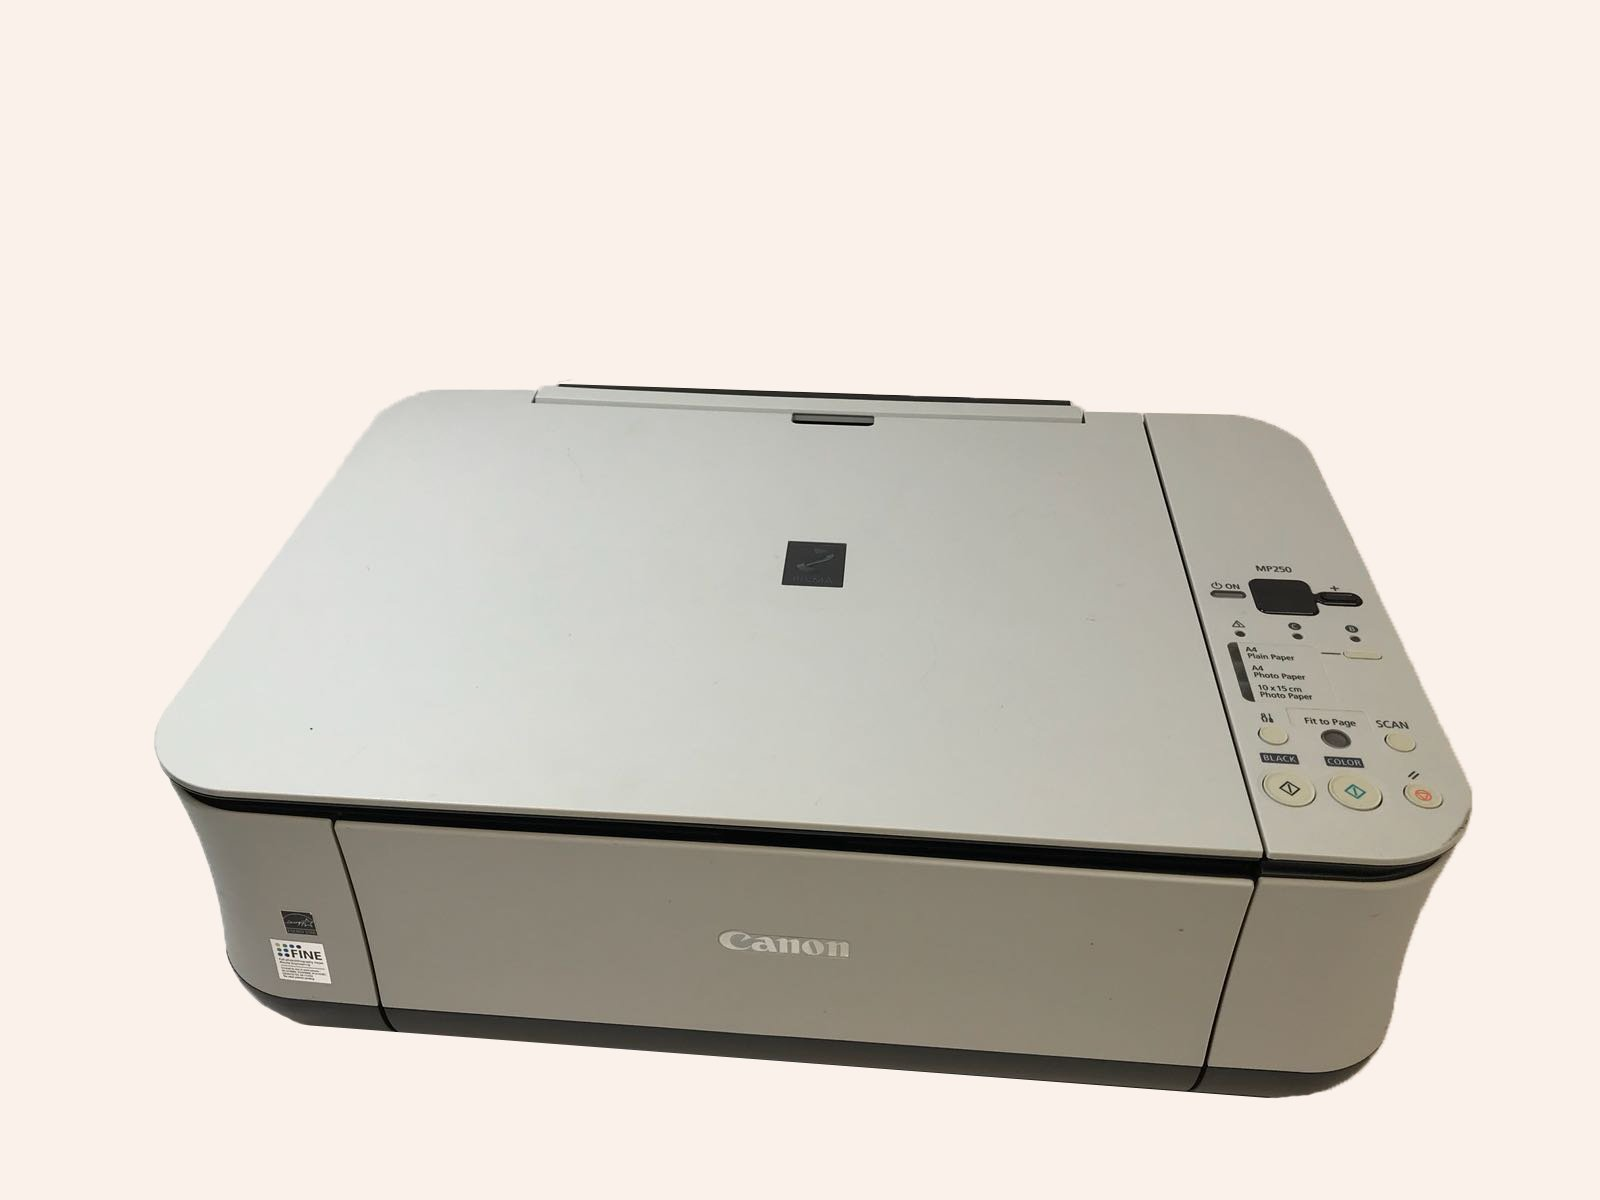 MP250 SCAN DRIVER FREE